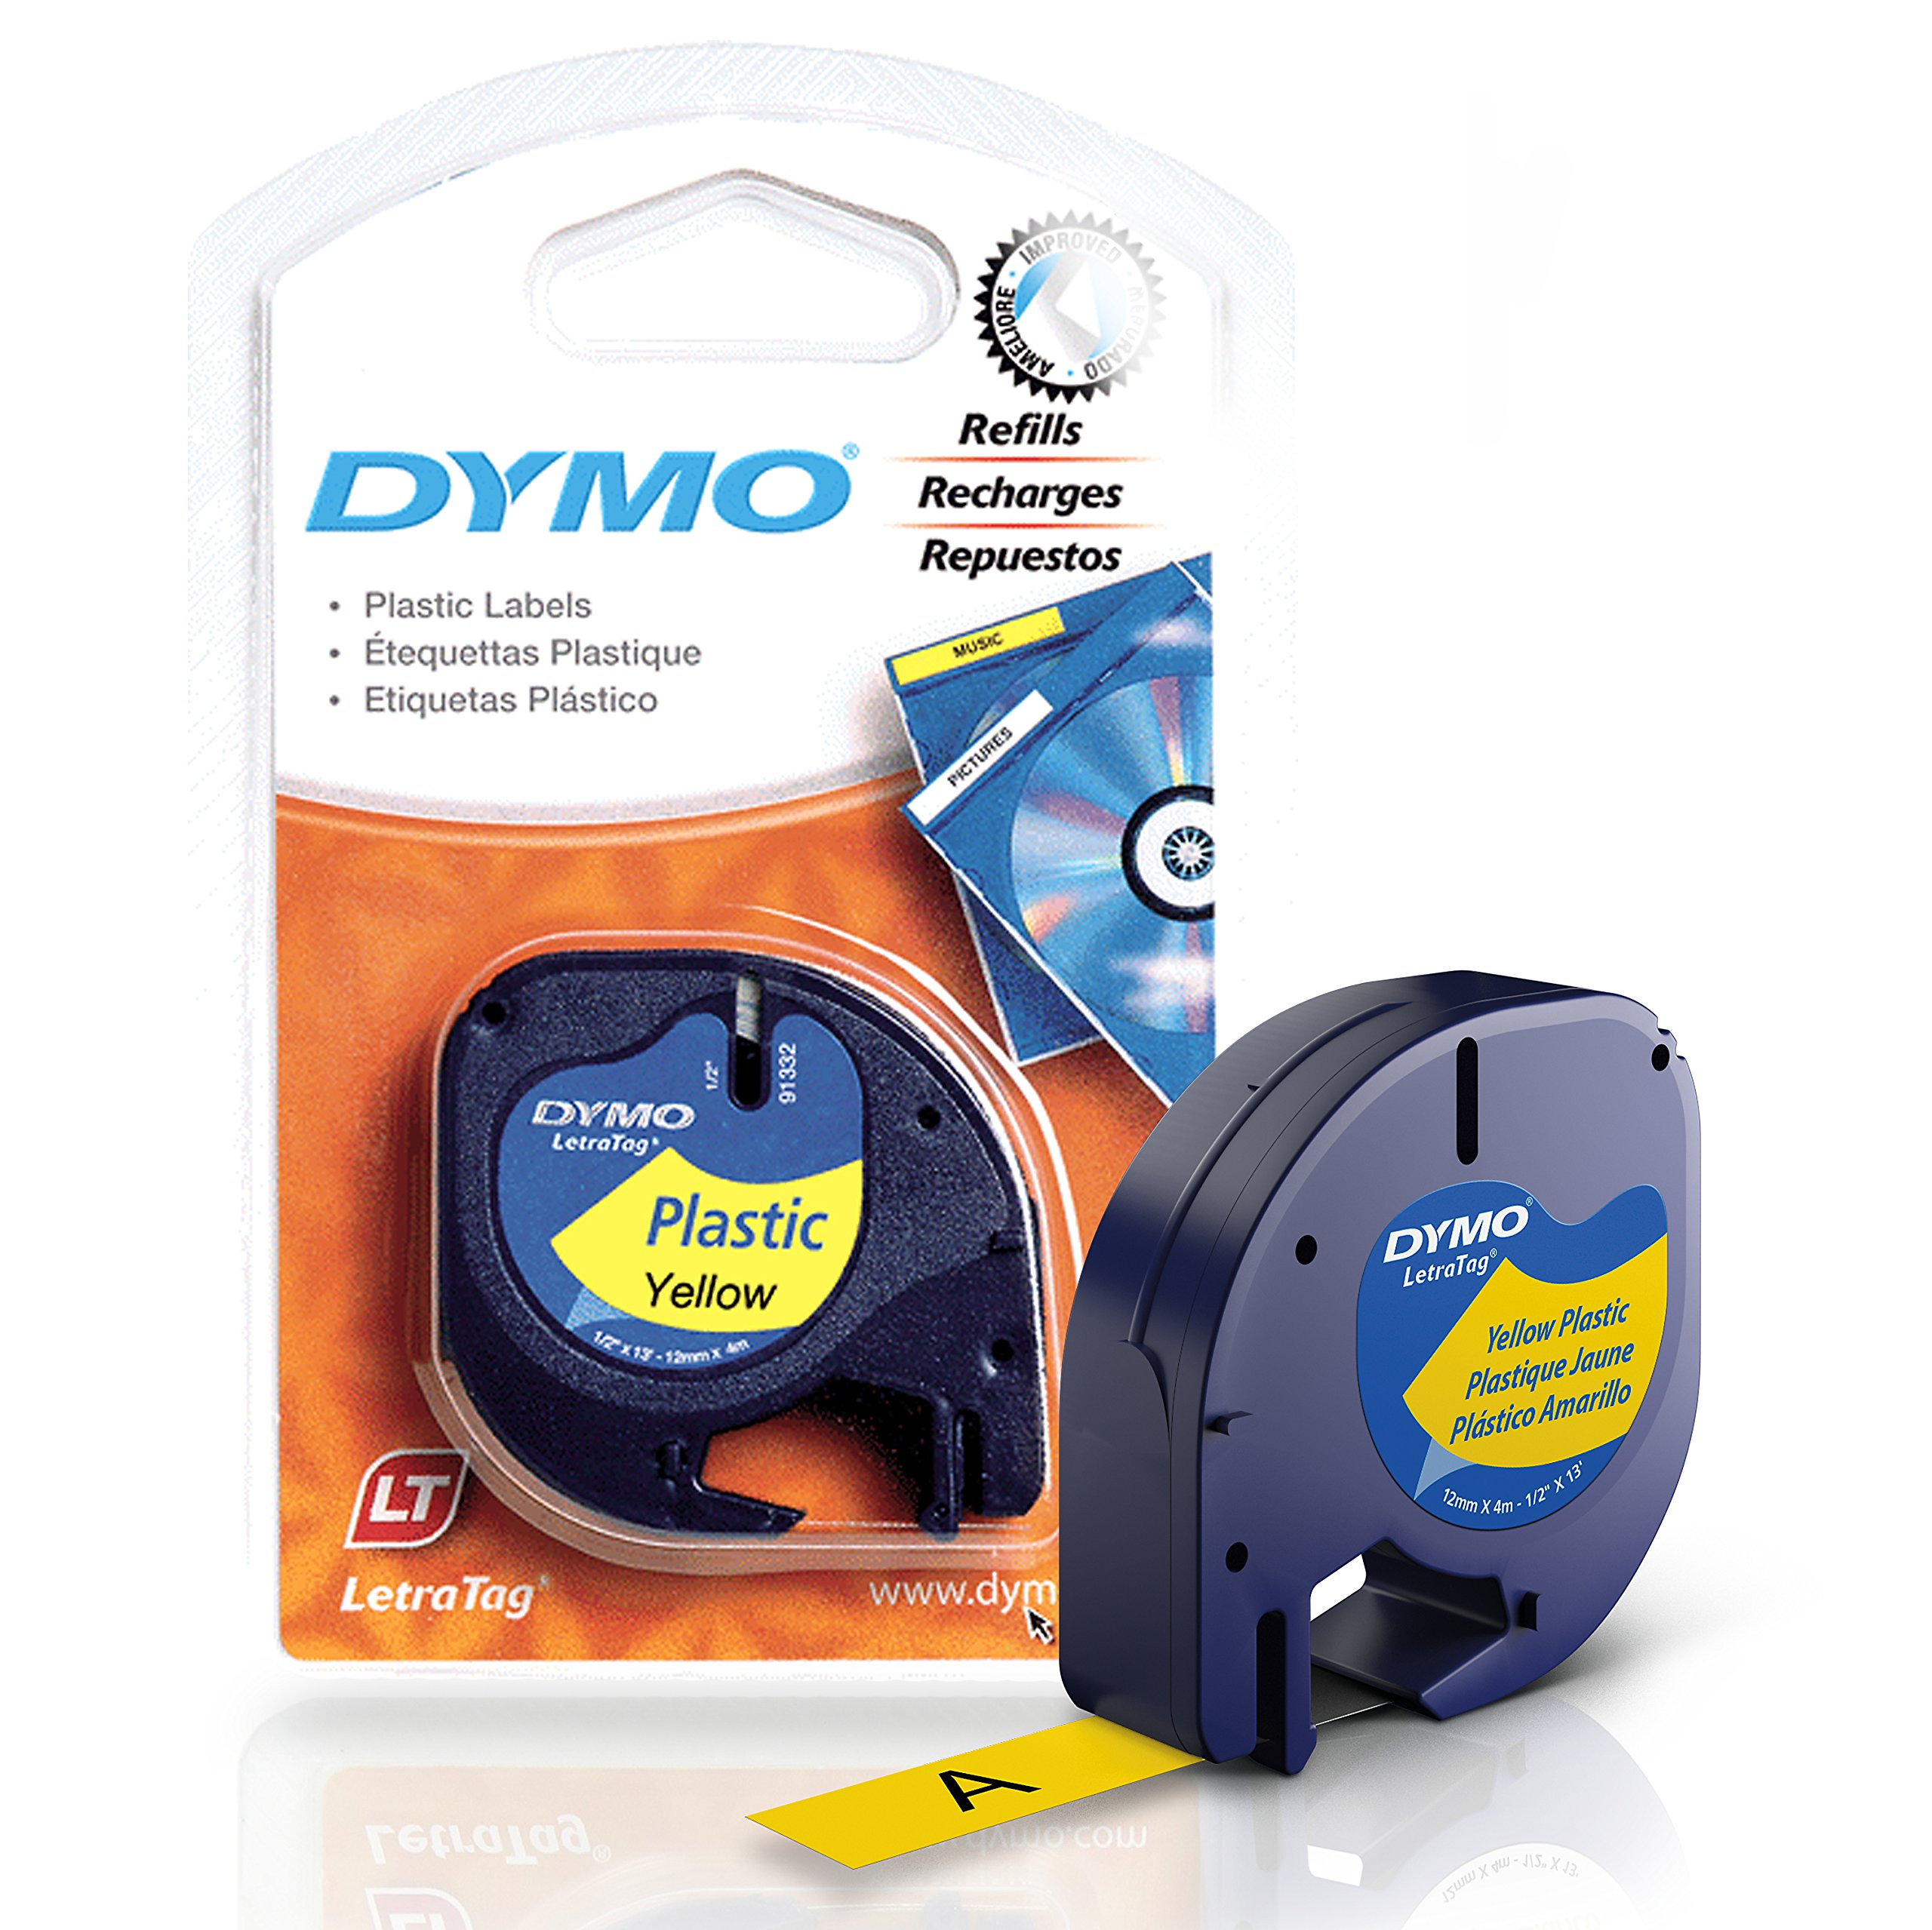 DYMO LetraTag Labeling Tape for LetraTag Label Makers, Black print on Yellow tape, 1/2'' W x 13' L, 1 roll (91332)